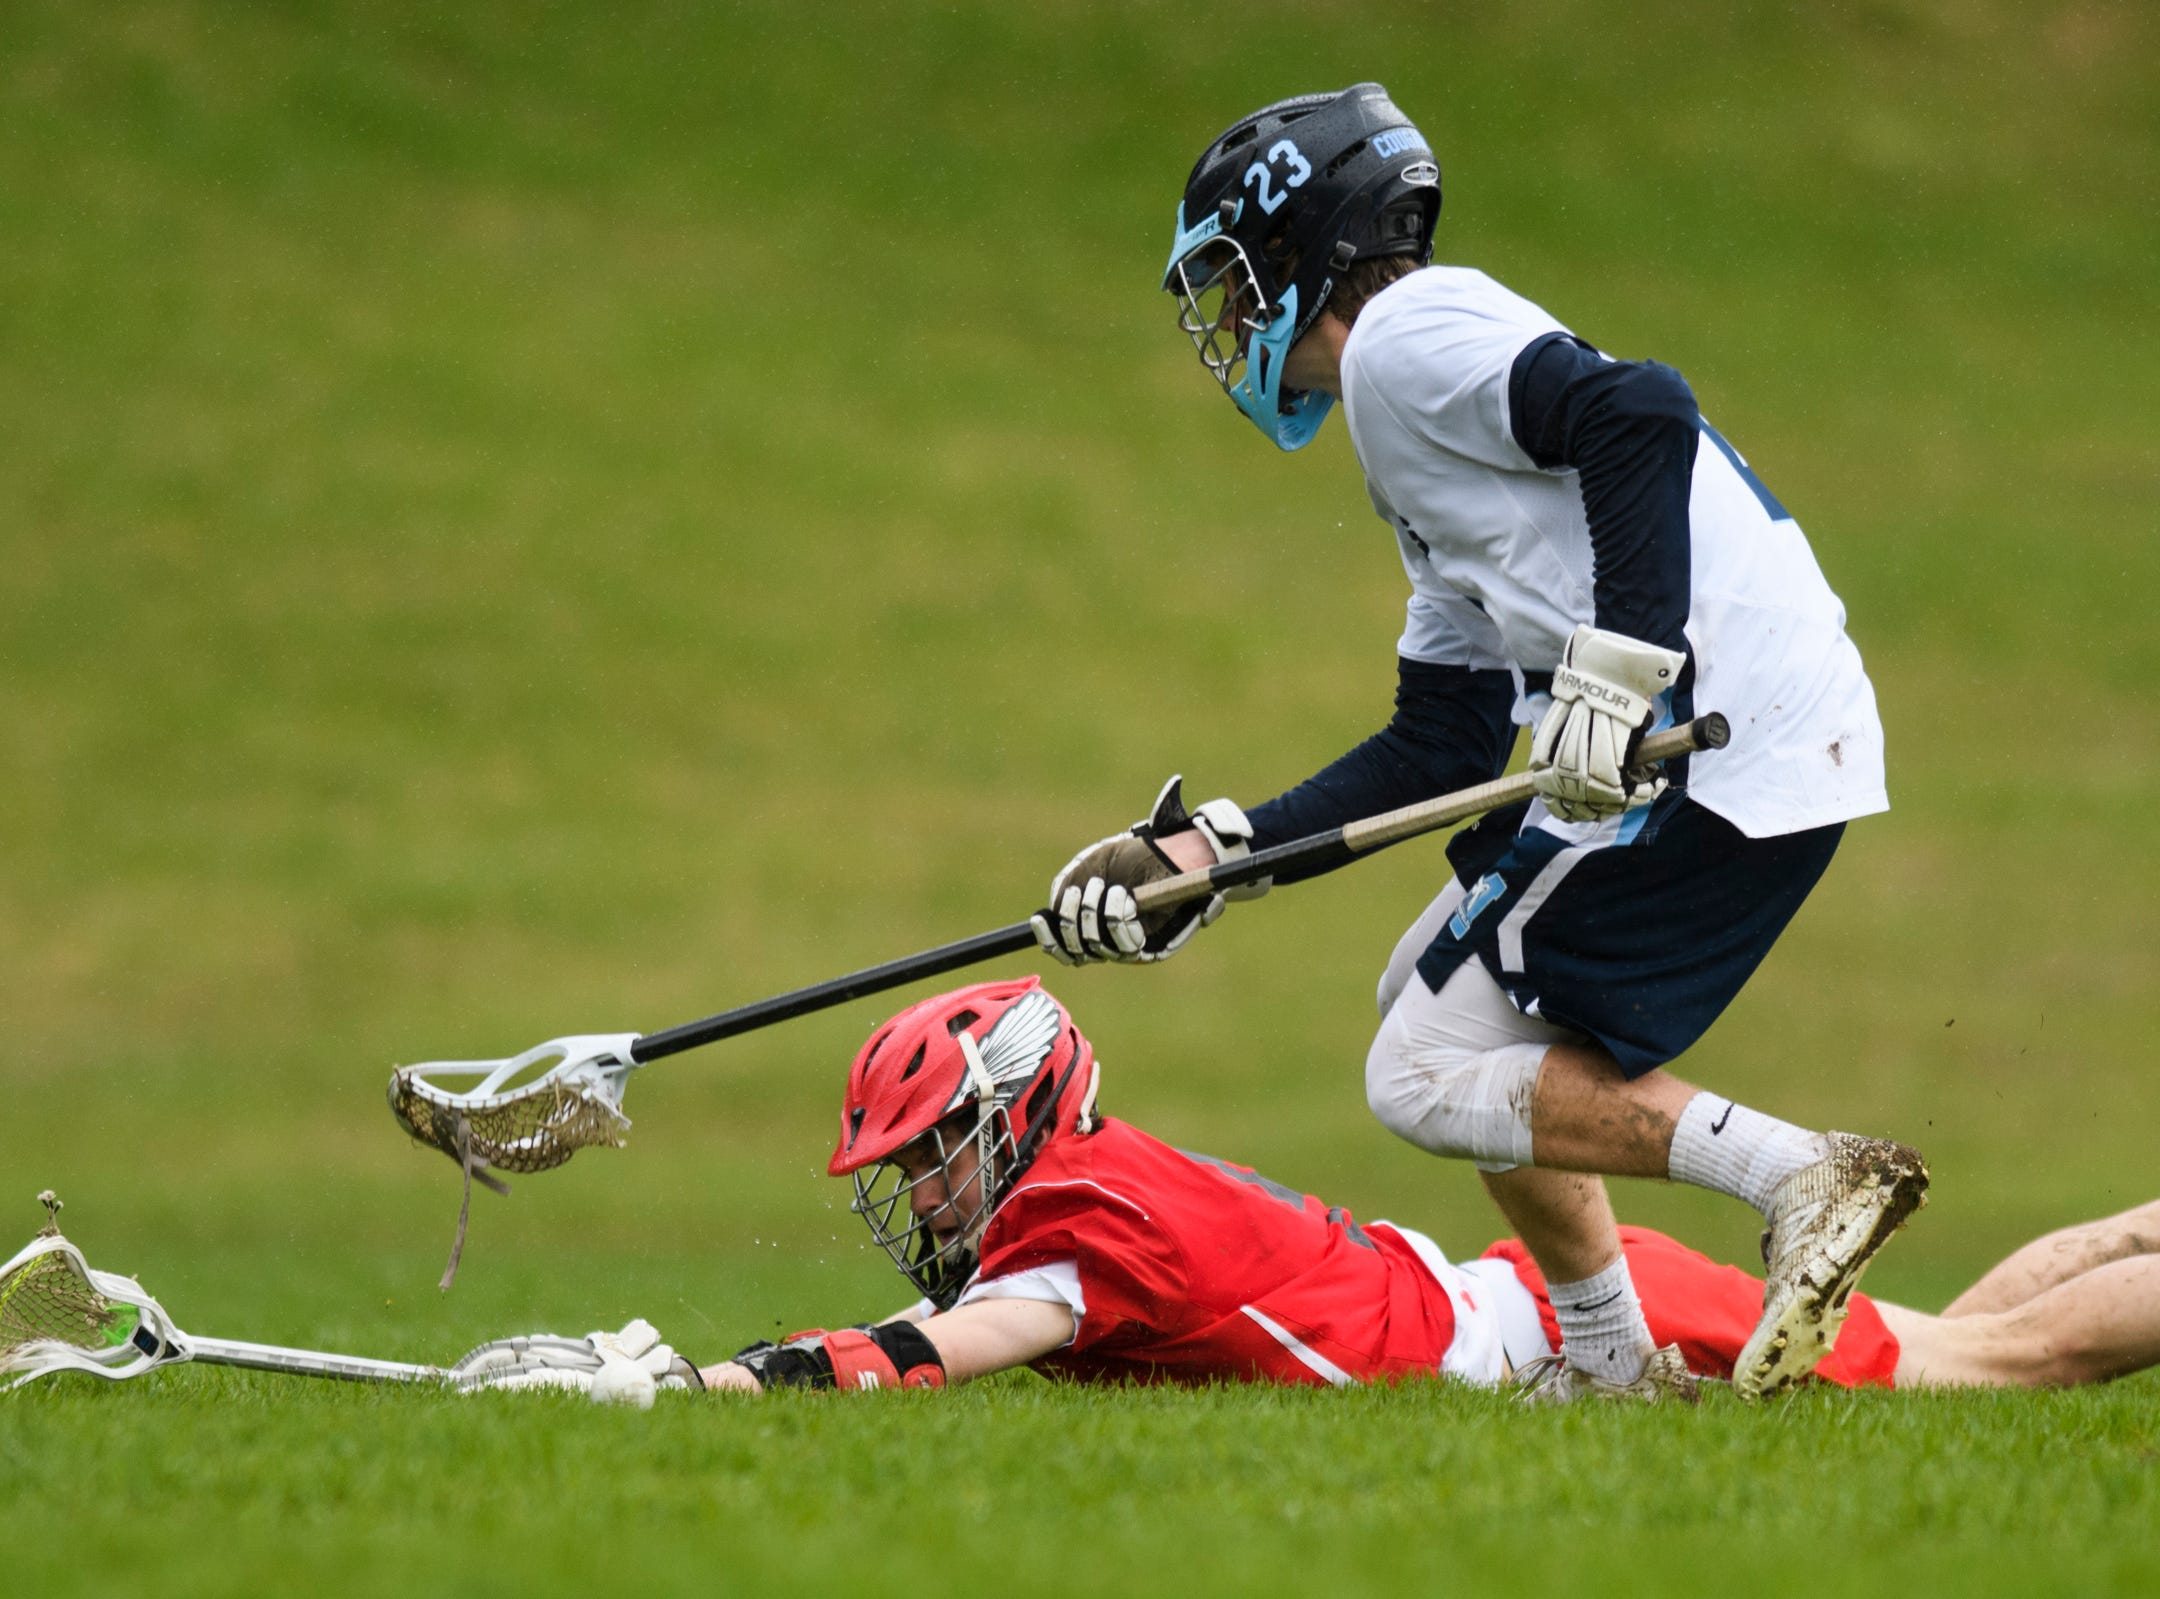 CVU's Jake Schaefer (5) falls down as he battles for the ball with MMU's Matt Reinfurt (23) during the boys lacrosse game between the Champlain Valley Union Redhawks and the Mount Mansfield Cougars at MMU High School on Tuesday afternoon May 14, 2019 in Jericho, Vermont.